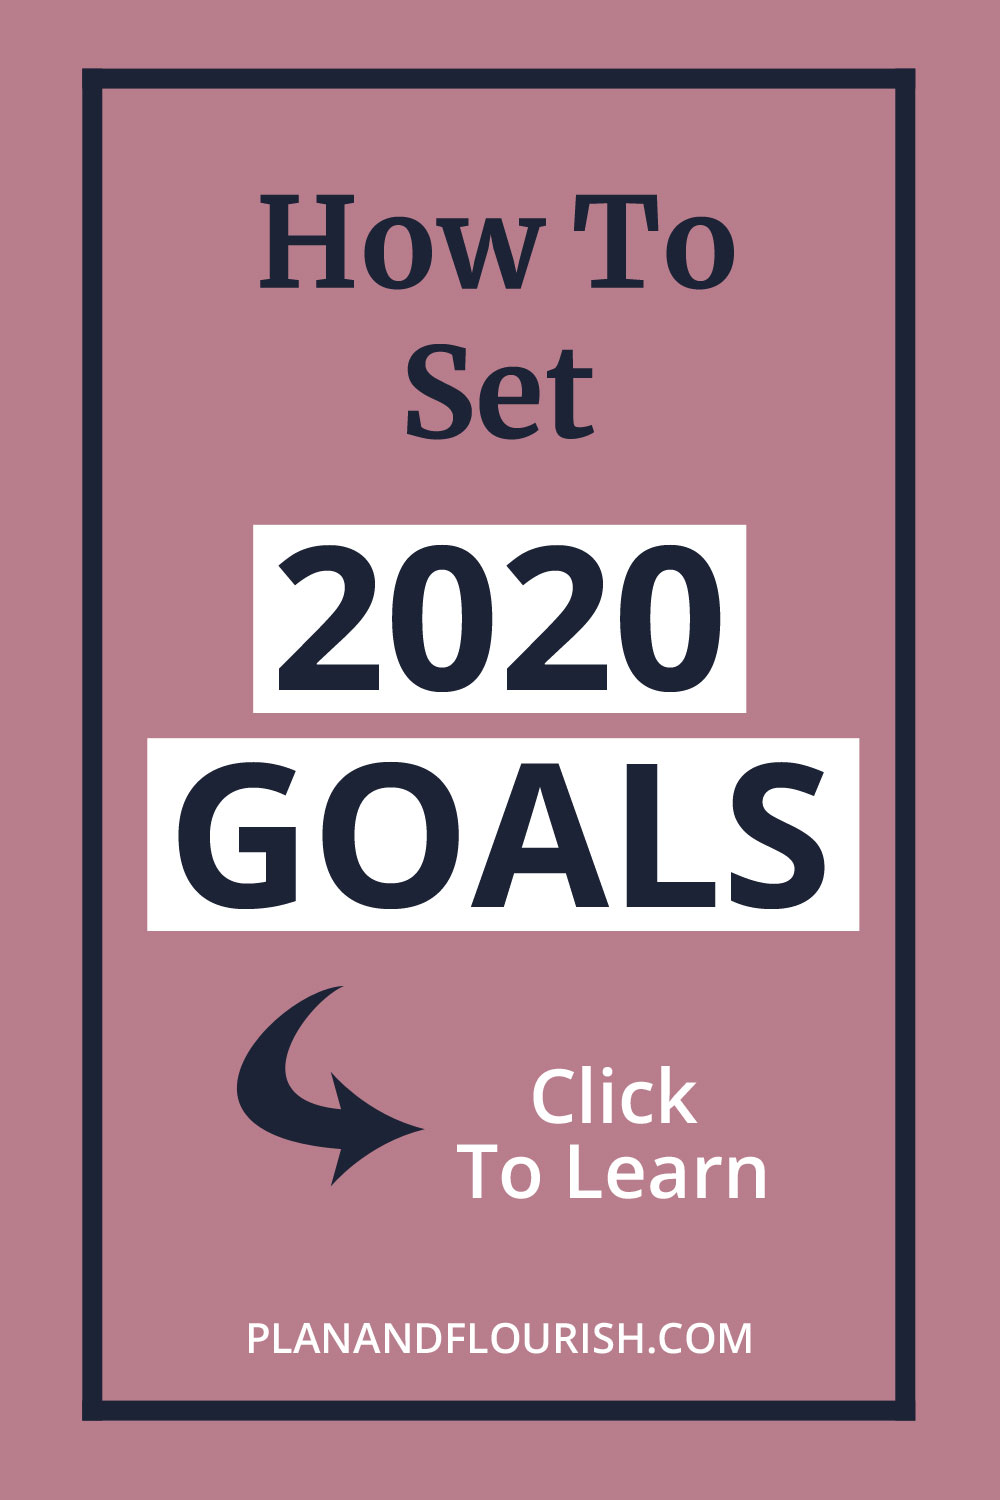 How To Set 2020 Goals